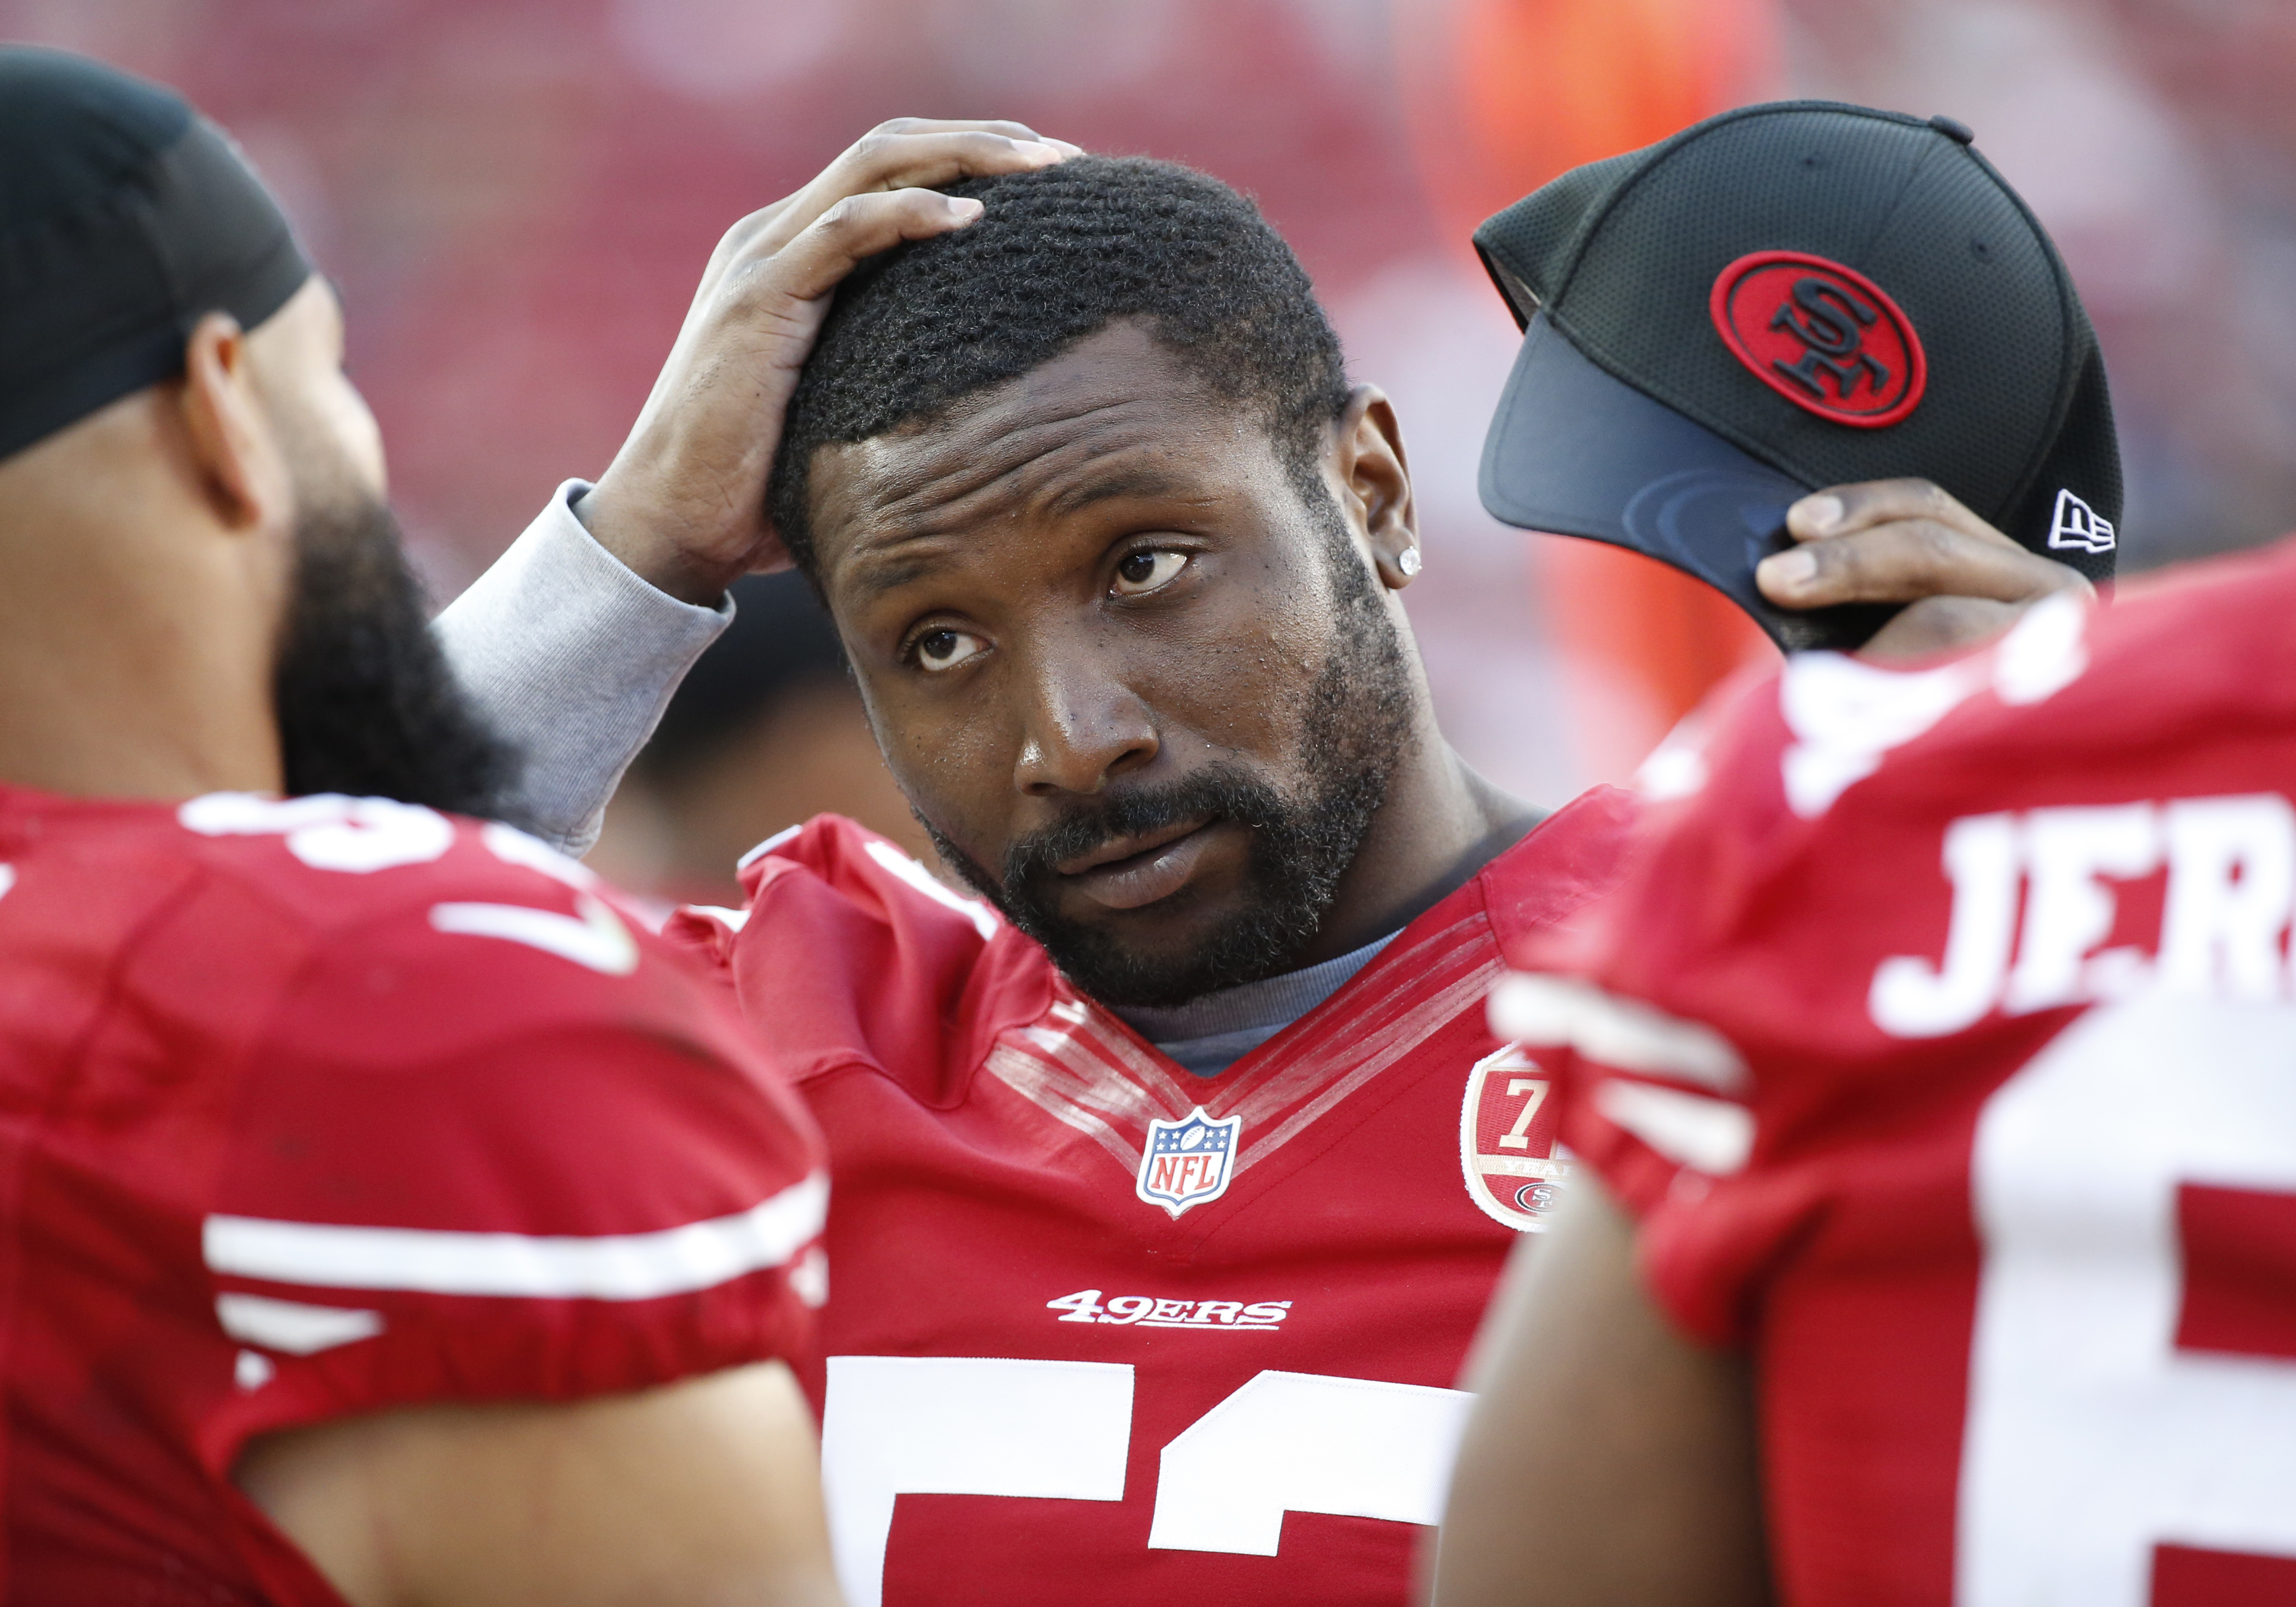 This Aug. 14, 2016 photo shows San Francisco 49ers inside linebacker NaVorro Bowman standing on the sidelines during the second half of an NFL preseason football game in Santa Clara, Calif. The 49ers have taken a rapid fall from perennial NFC contender to